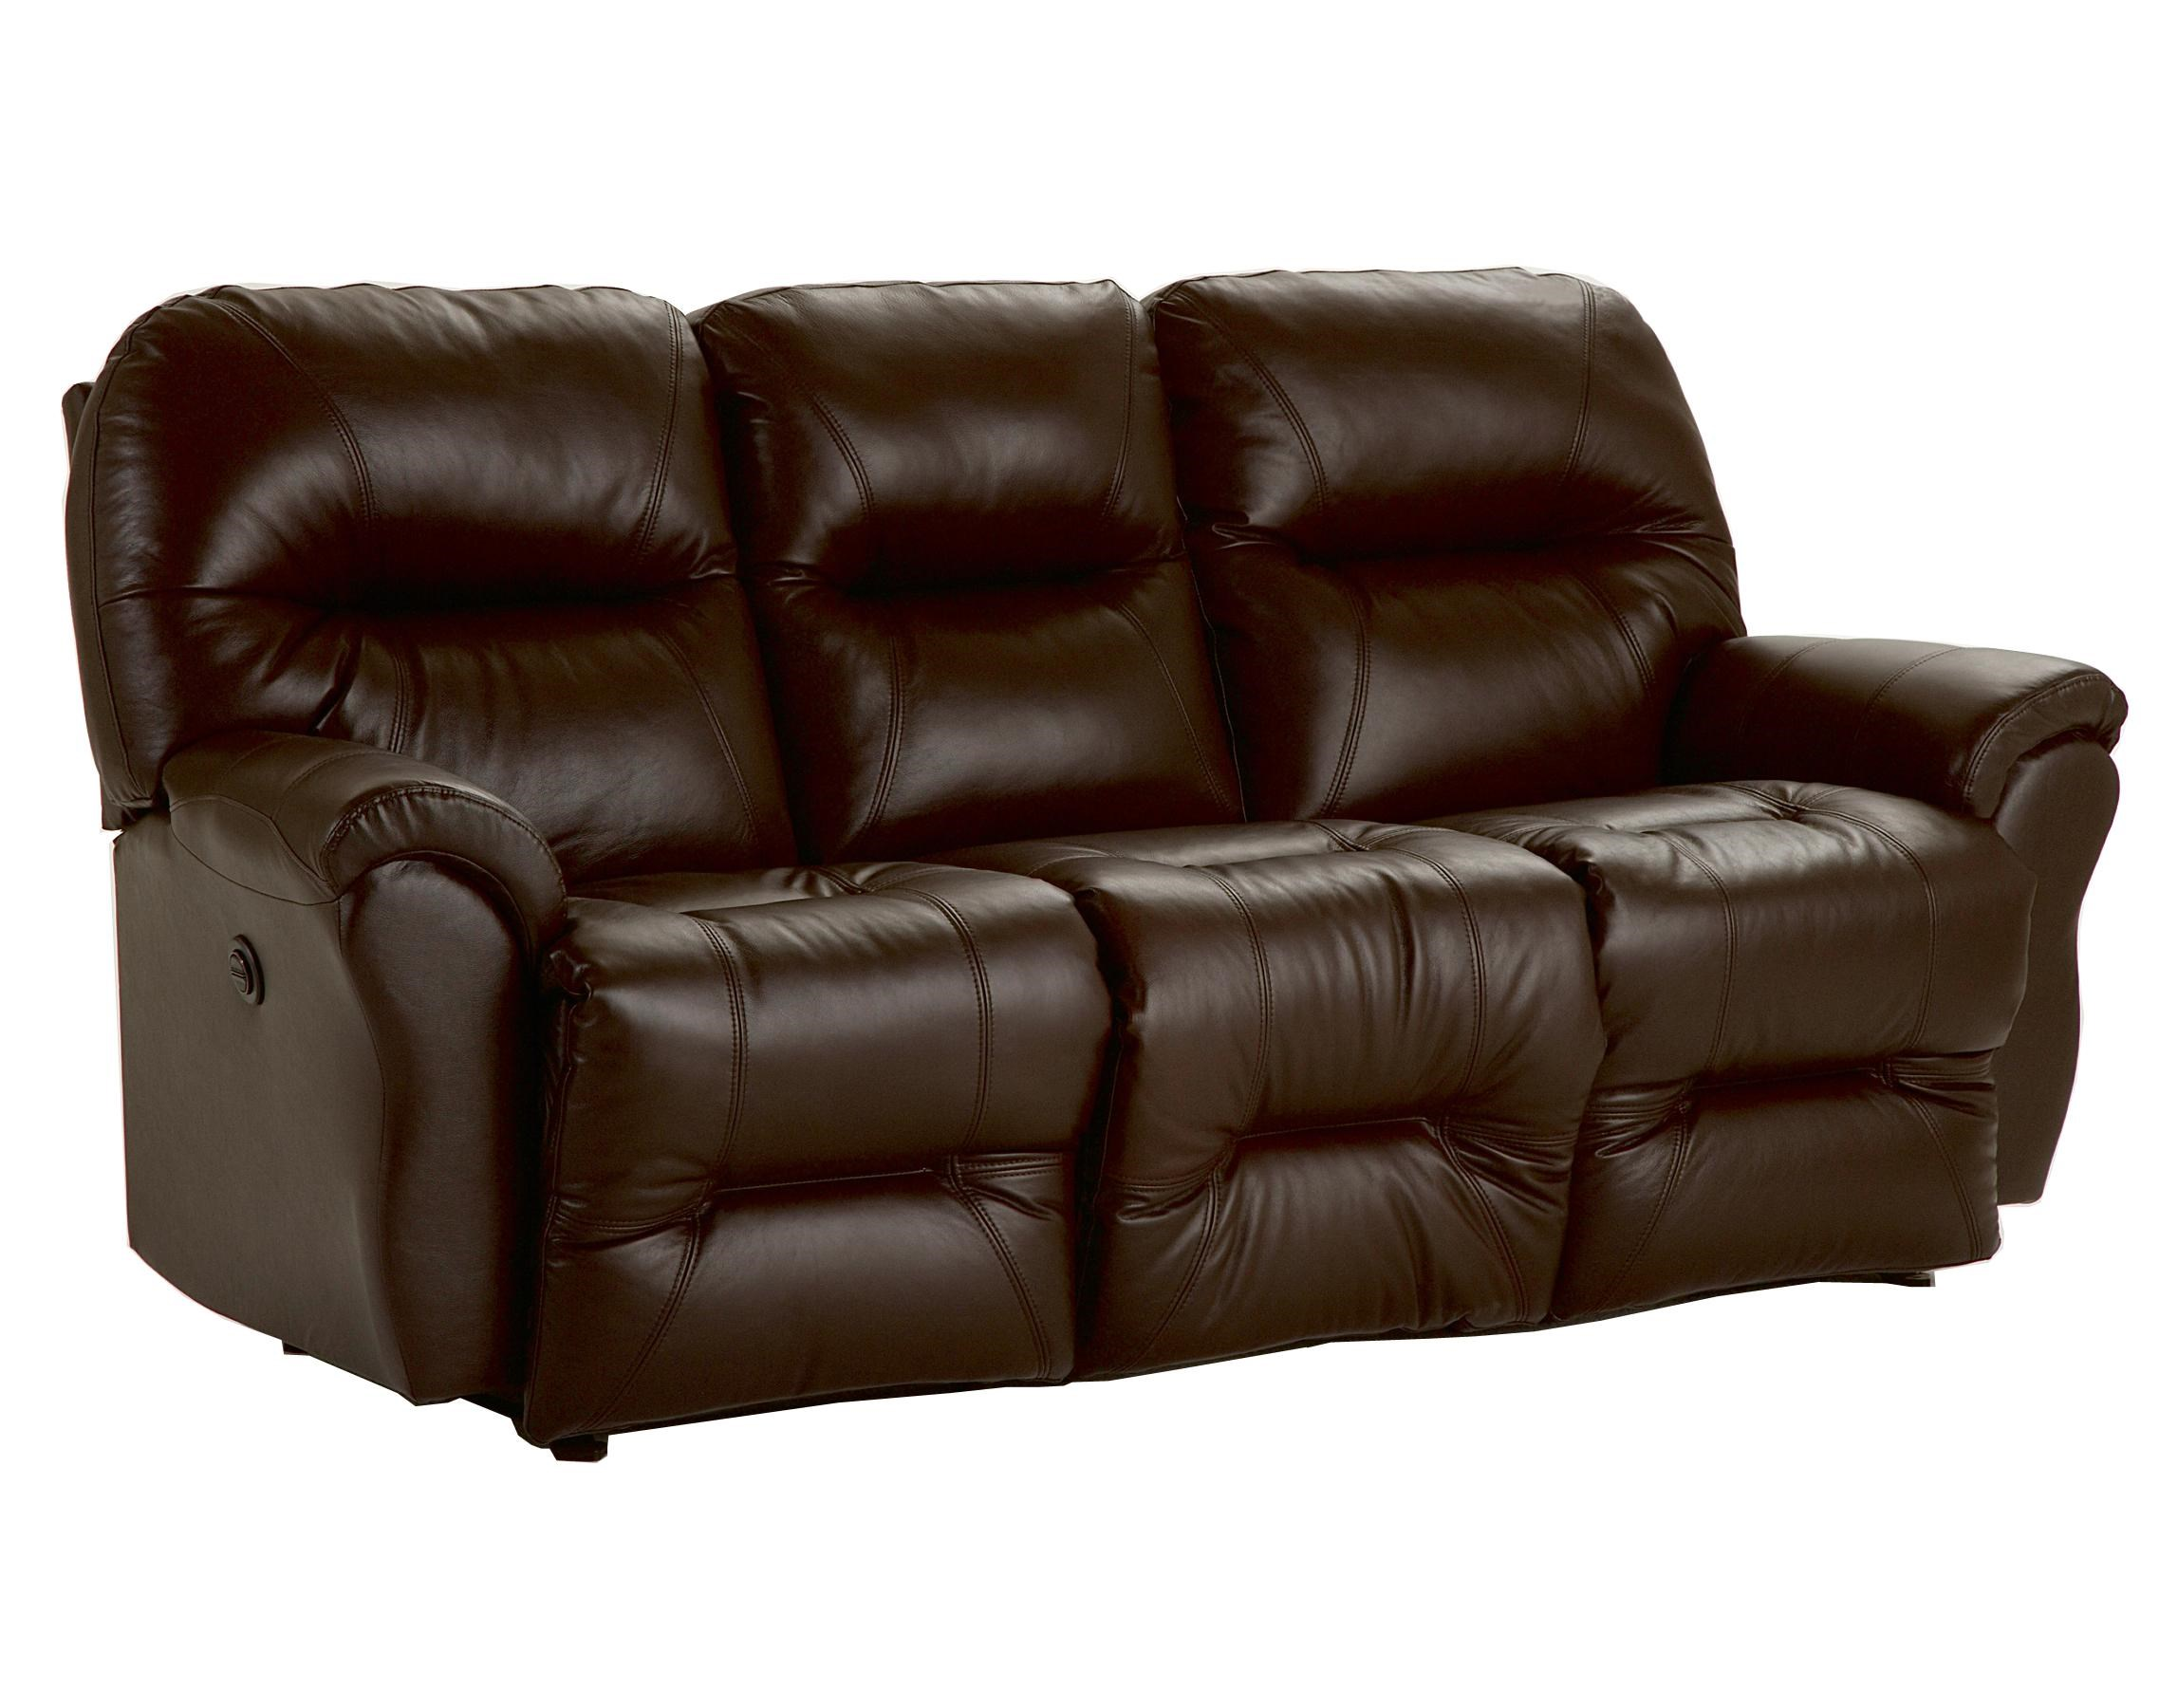 Sofa Shown May Not Represent Exact Features Indicated  sc 1 st  Hudsonu0027s Furniture & Best Home Furnishings Bodie Power Reclining Sofa Chaise - Hudsonu0027s ... islam-shia.org